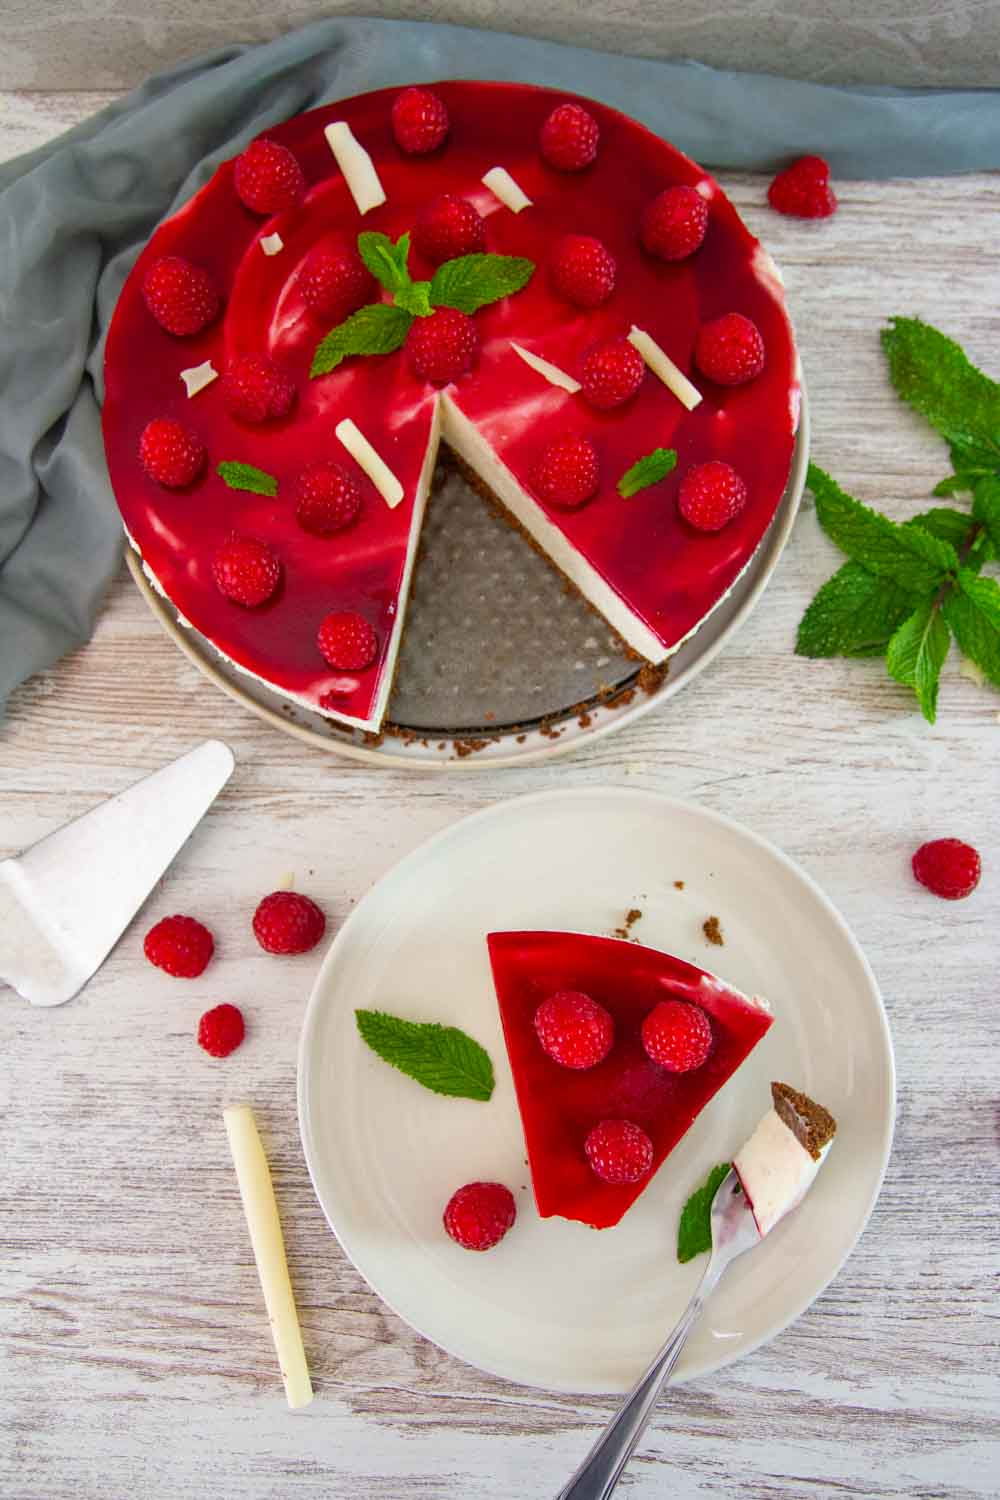 No-Bake White Chocolate Raspberry Cheesecake is a sugar-free low carb easy dessert for summer! It's SO smooth and creamy and you don't even have to turn on the oven. #keto #lowcarb #cheesecake #ketodessert